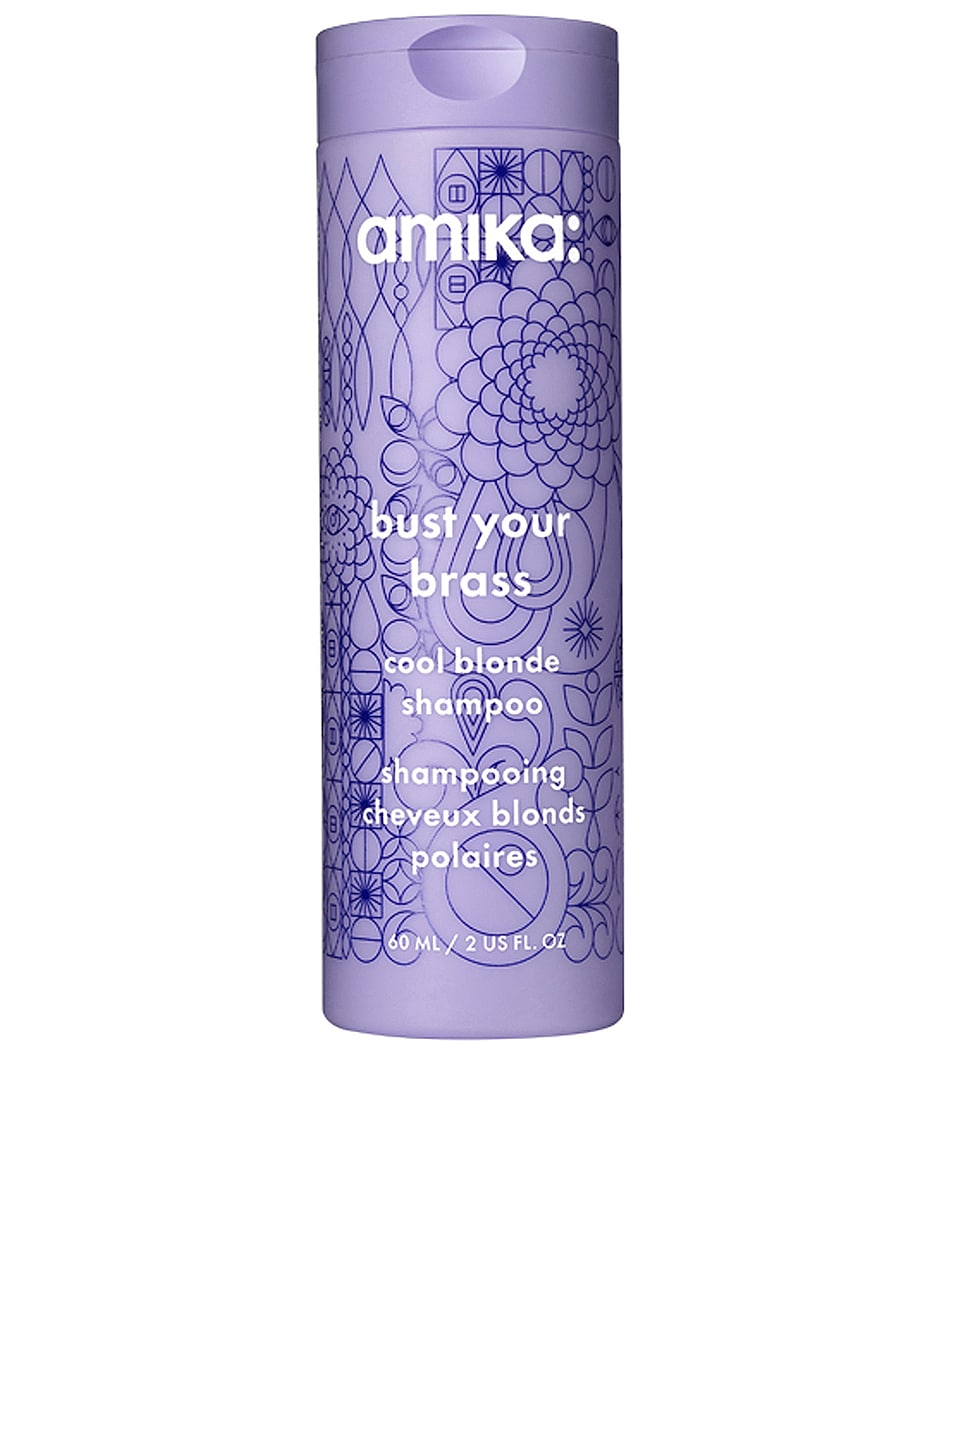 amika Travel Bust Your Brass Cool Blonde Shampoo